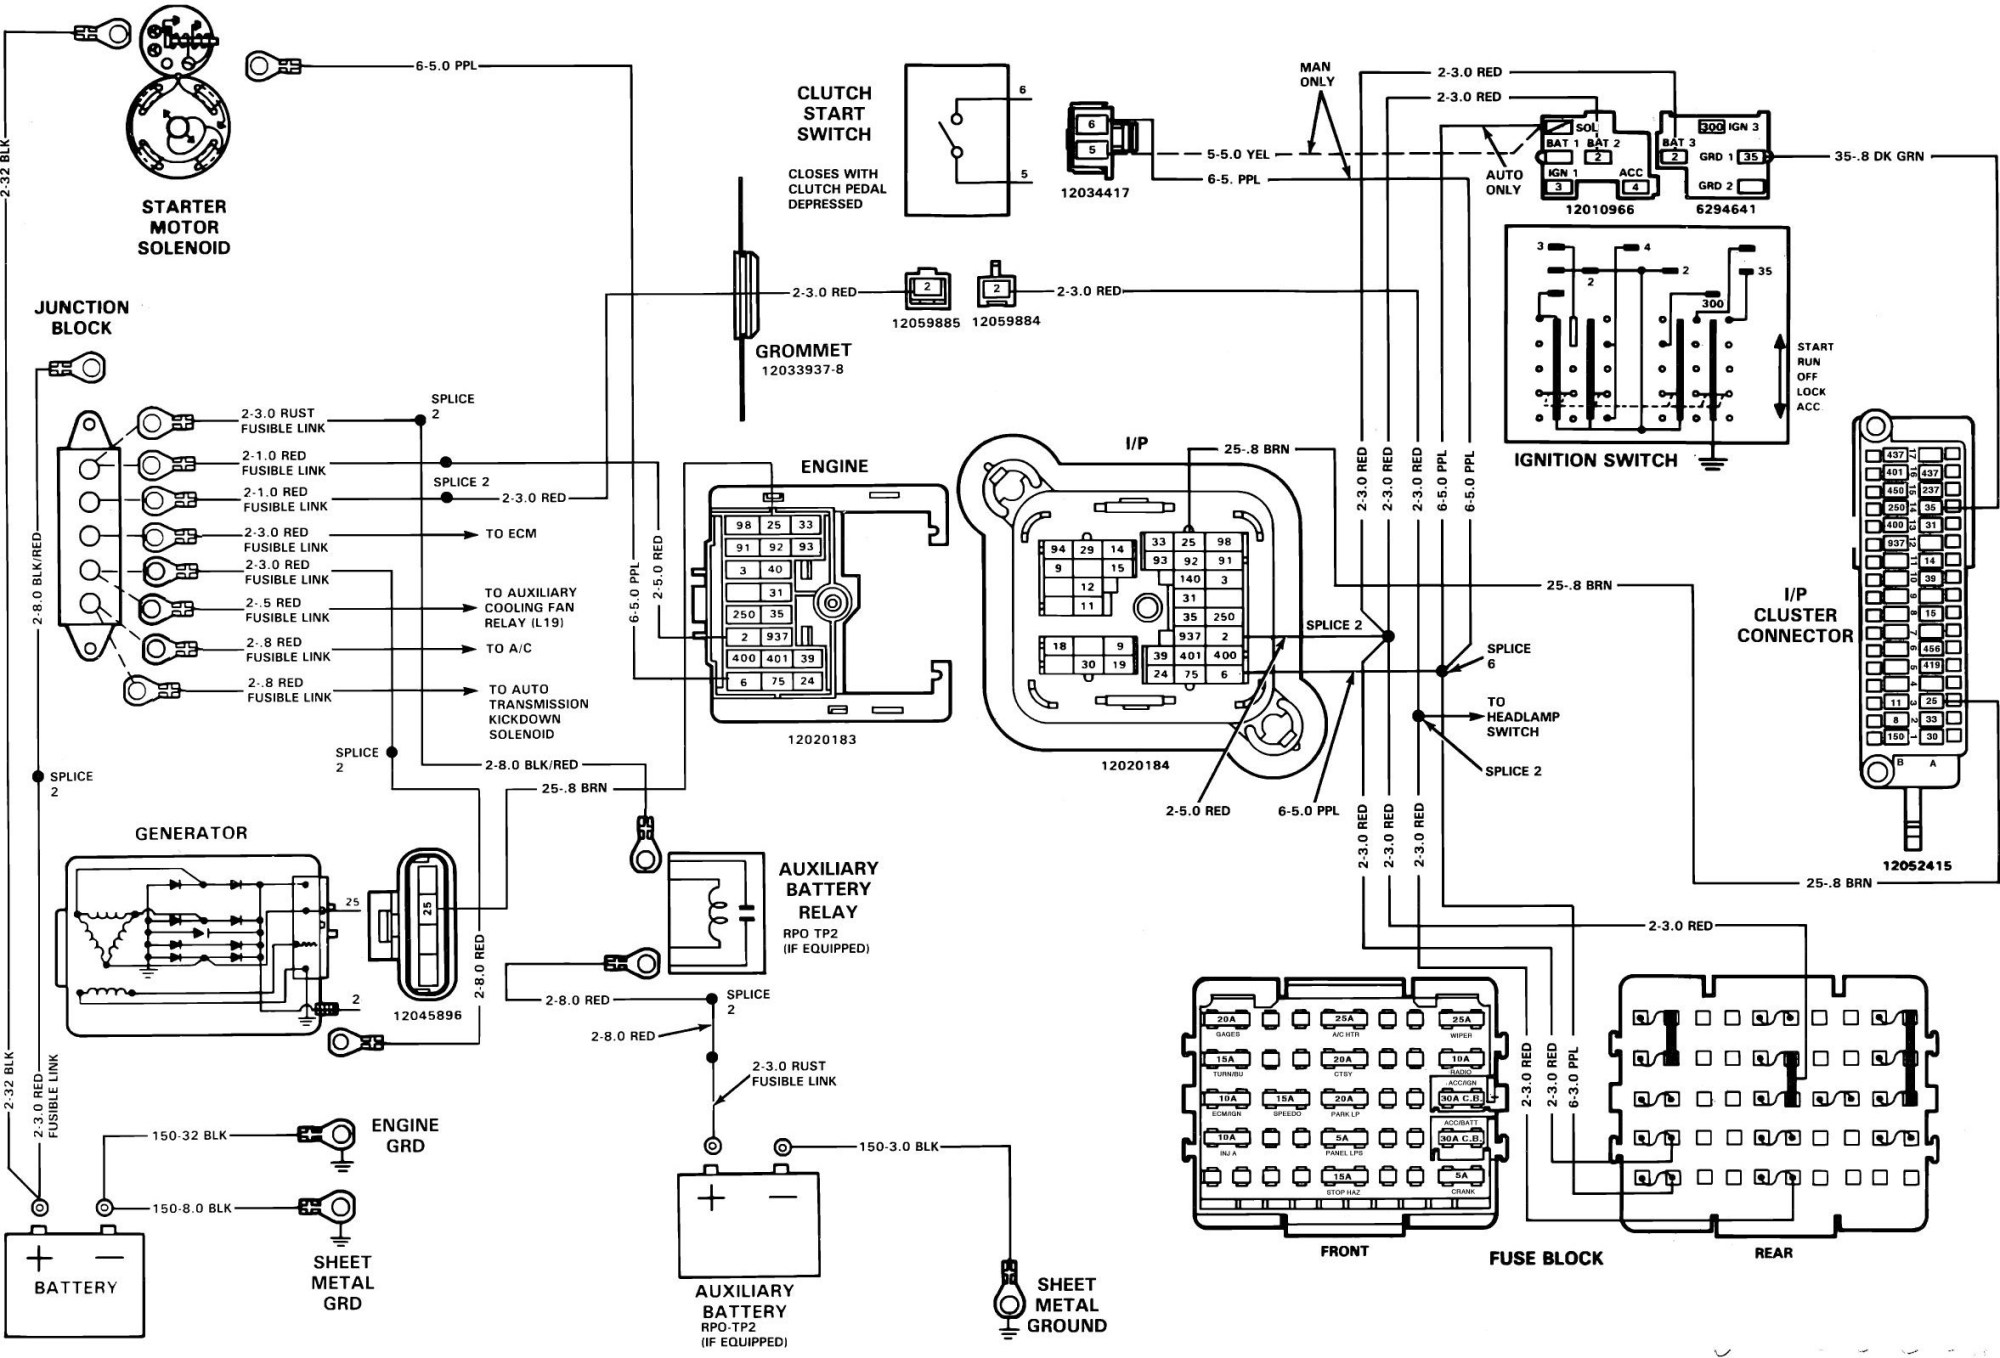 hight resolution of 1989 chevrolet silverado wiring diagram wiring diagram database diagram headlight switch for a 1989 chevy 1500 truck 1989 toyota truck